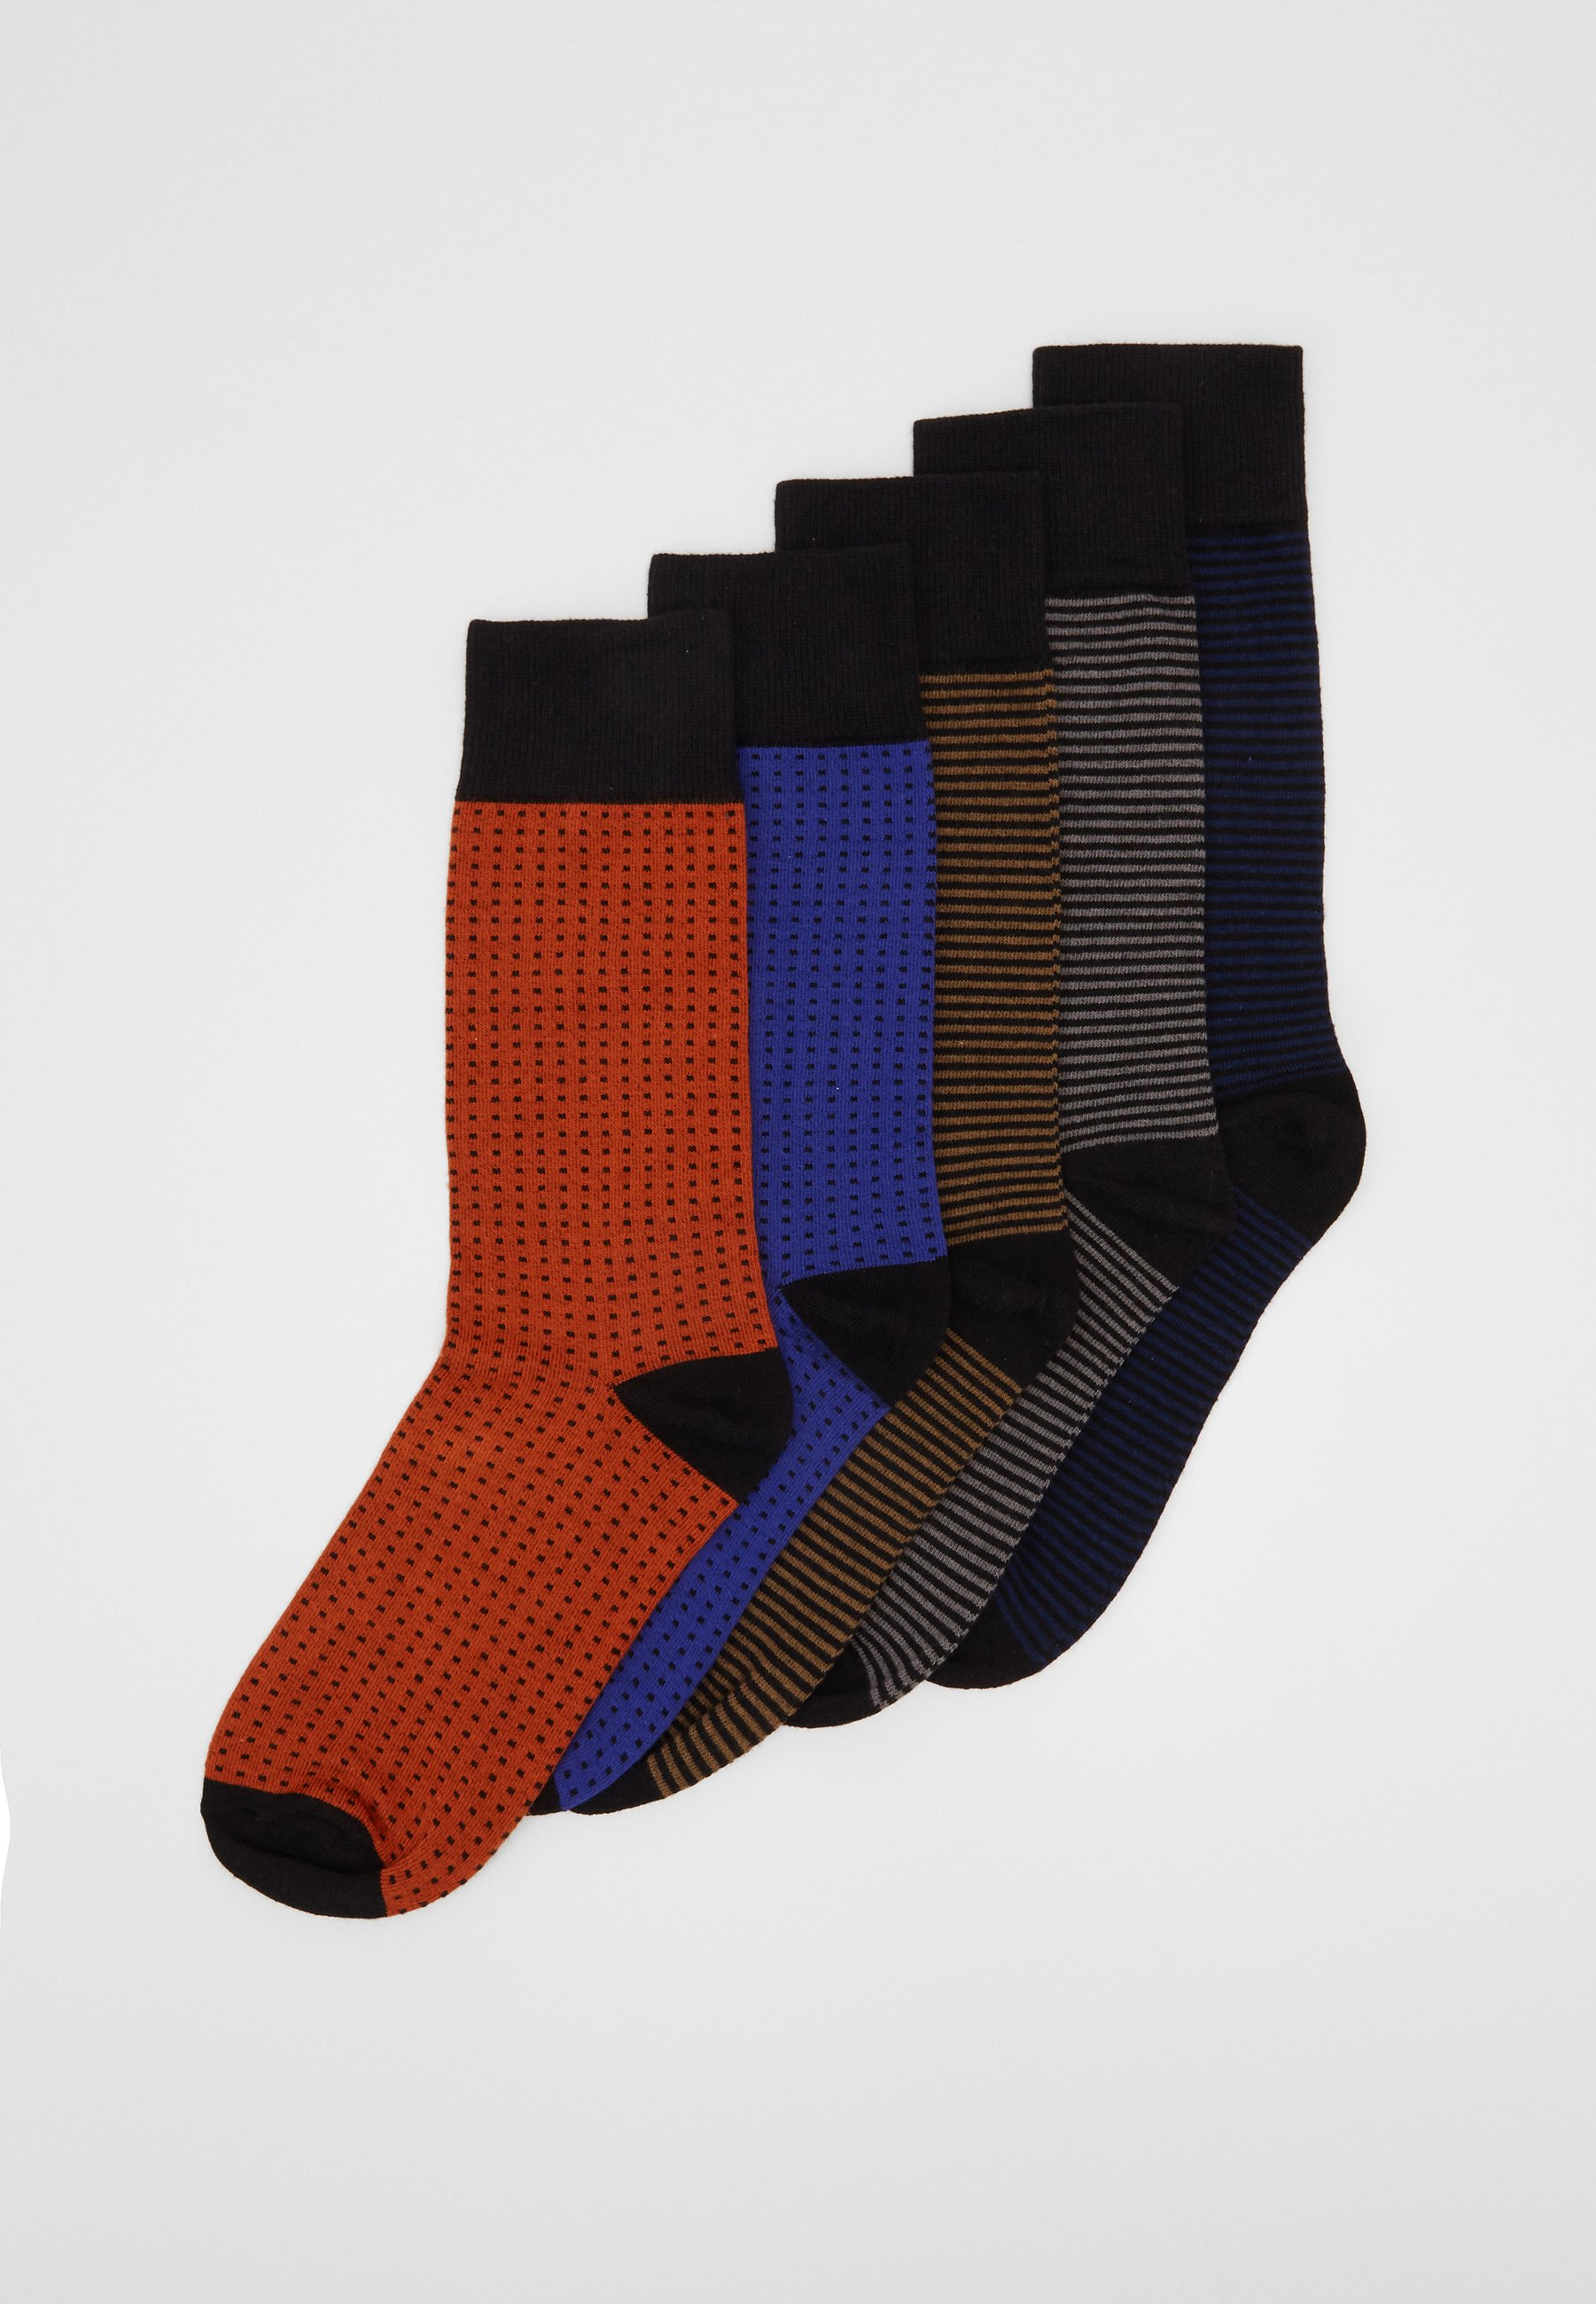 Donna STRIPES AND DOTS SOCKS 5 PACK - Calze